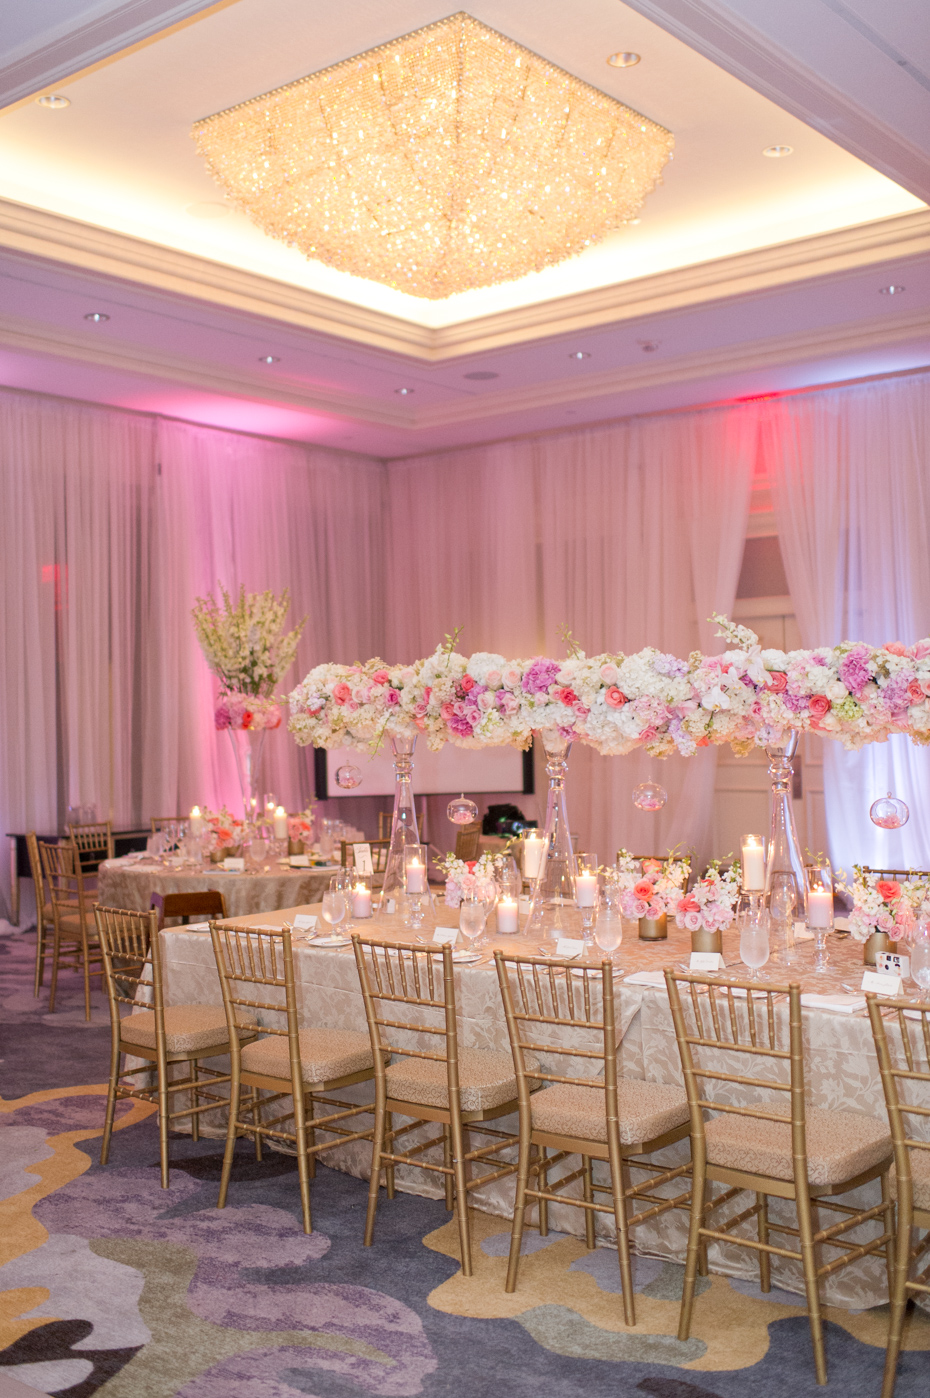 Photos from Ritz Carlton Buckhead Wedding